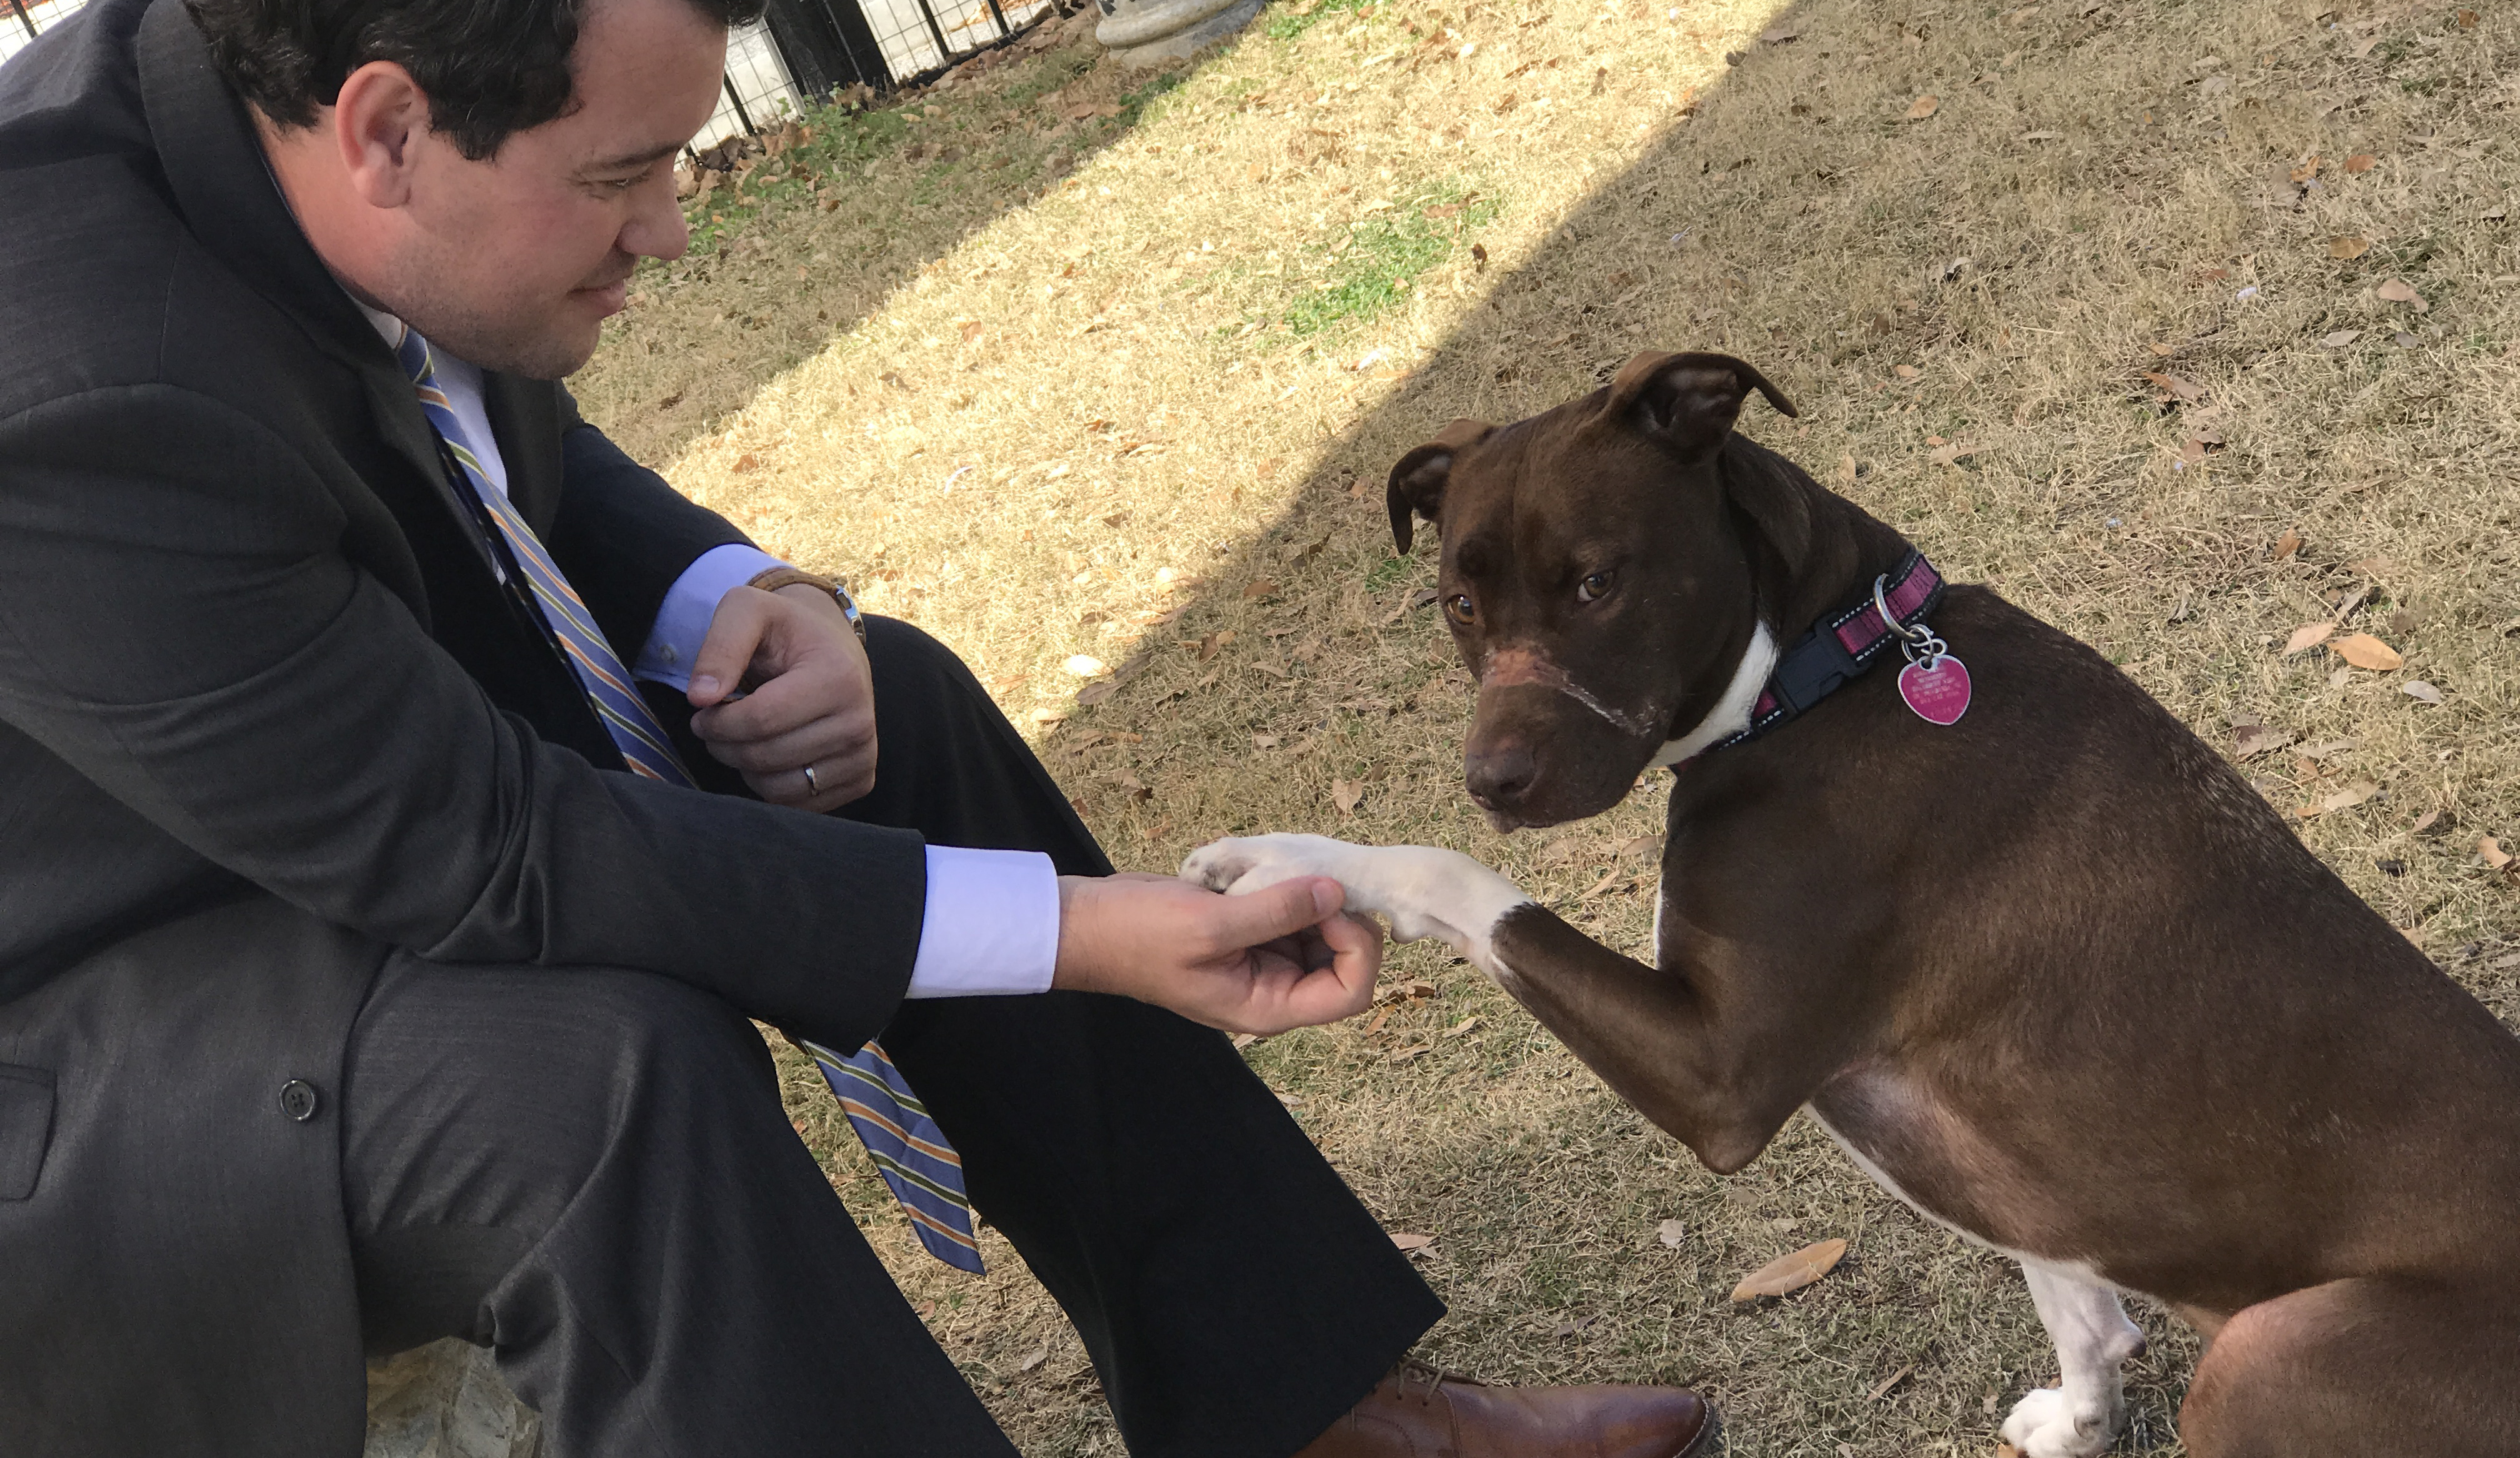 Caitlyn, a dog whose snout was once wrapped with electrical tape captured in gruesome photos, was healing well as her abuser was sentenced to prison in South Carolina Friday. (Published March 27, 2017.)